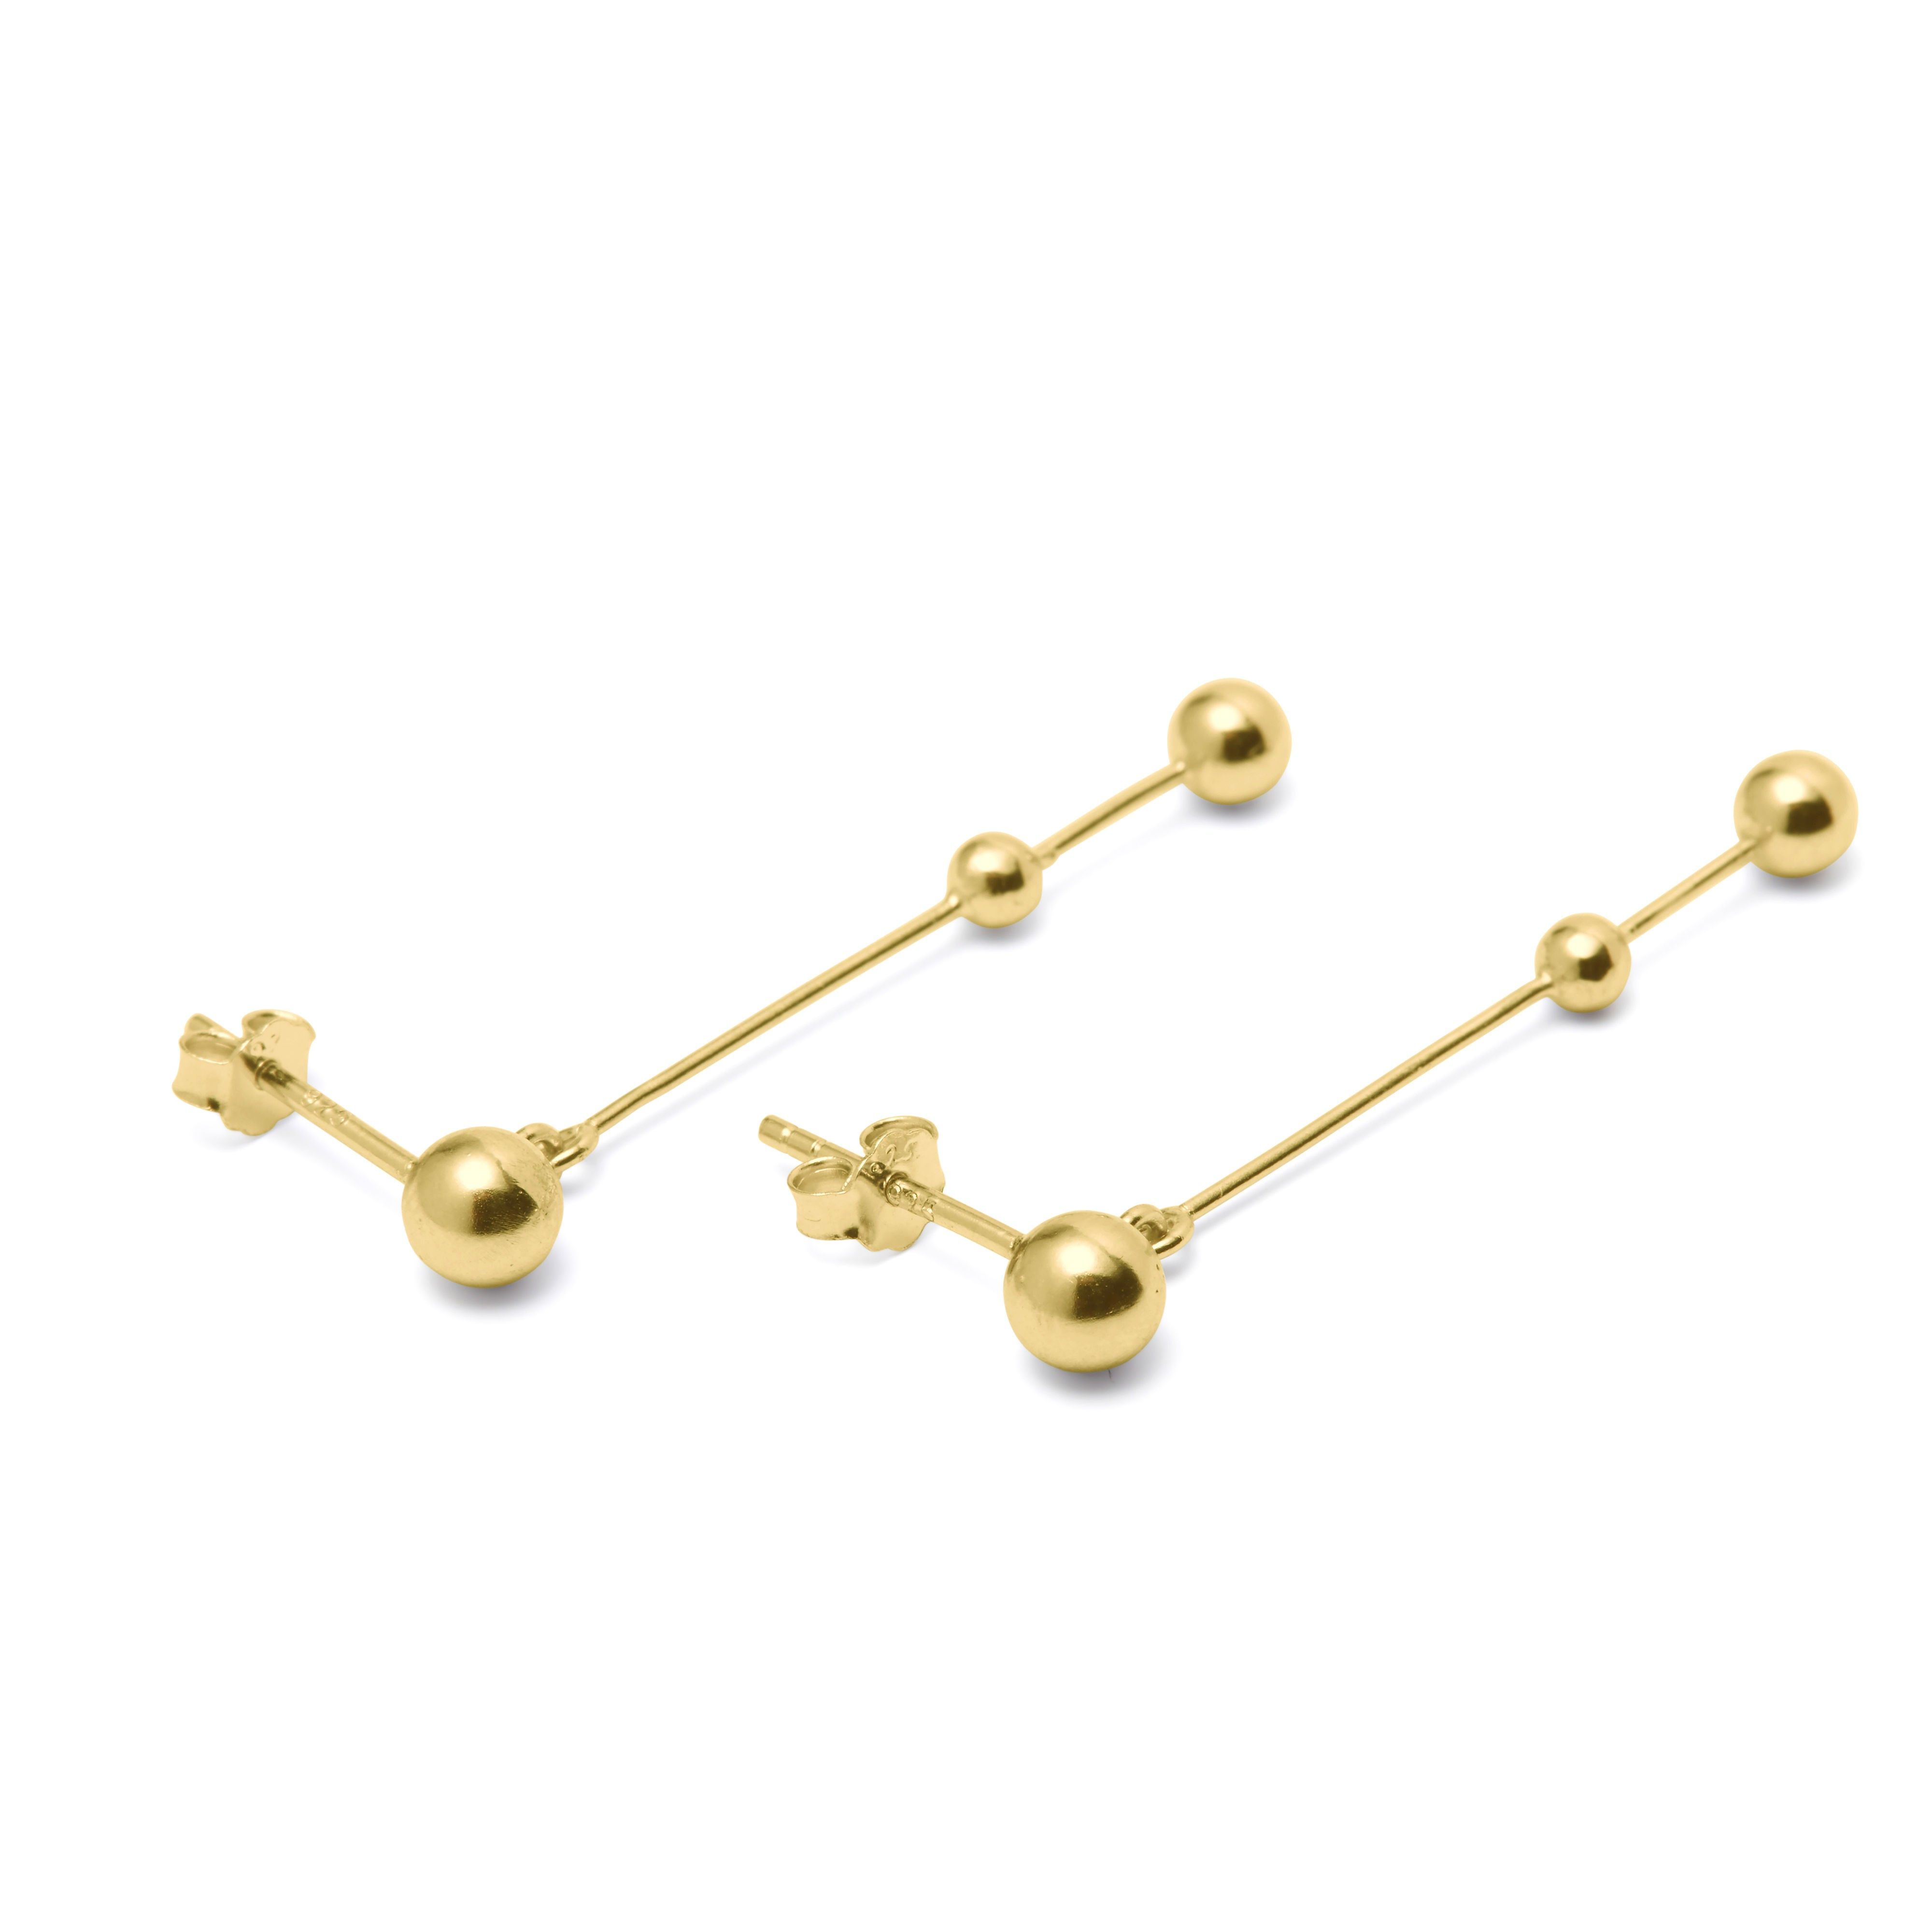 https://www.selecteddesigners.dk/media/catalog/product/s/p/sphere_03-04_gold.jpg